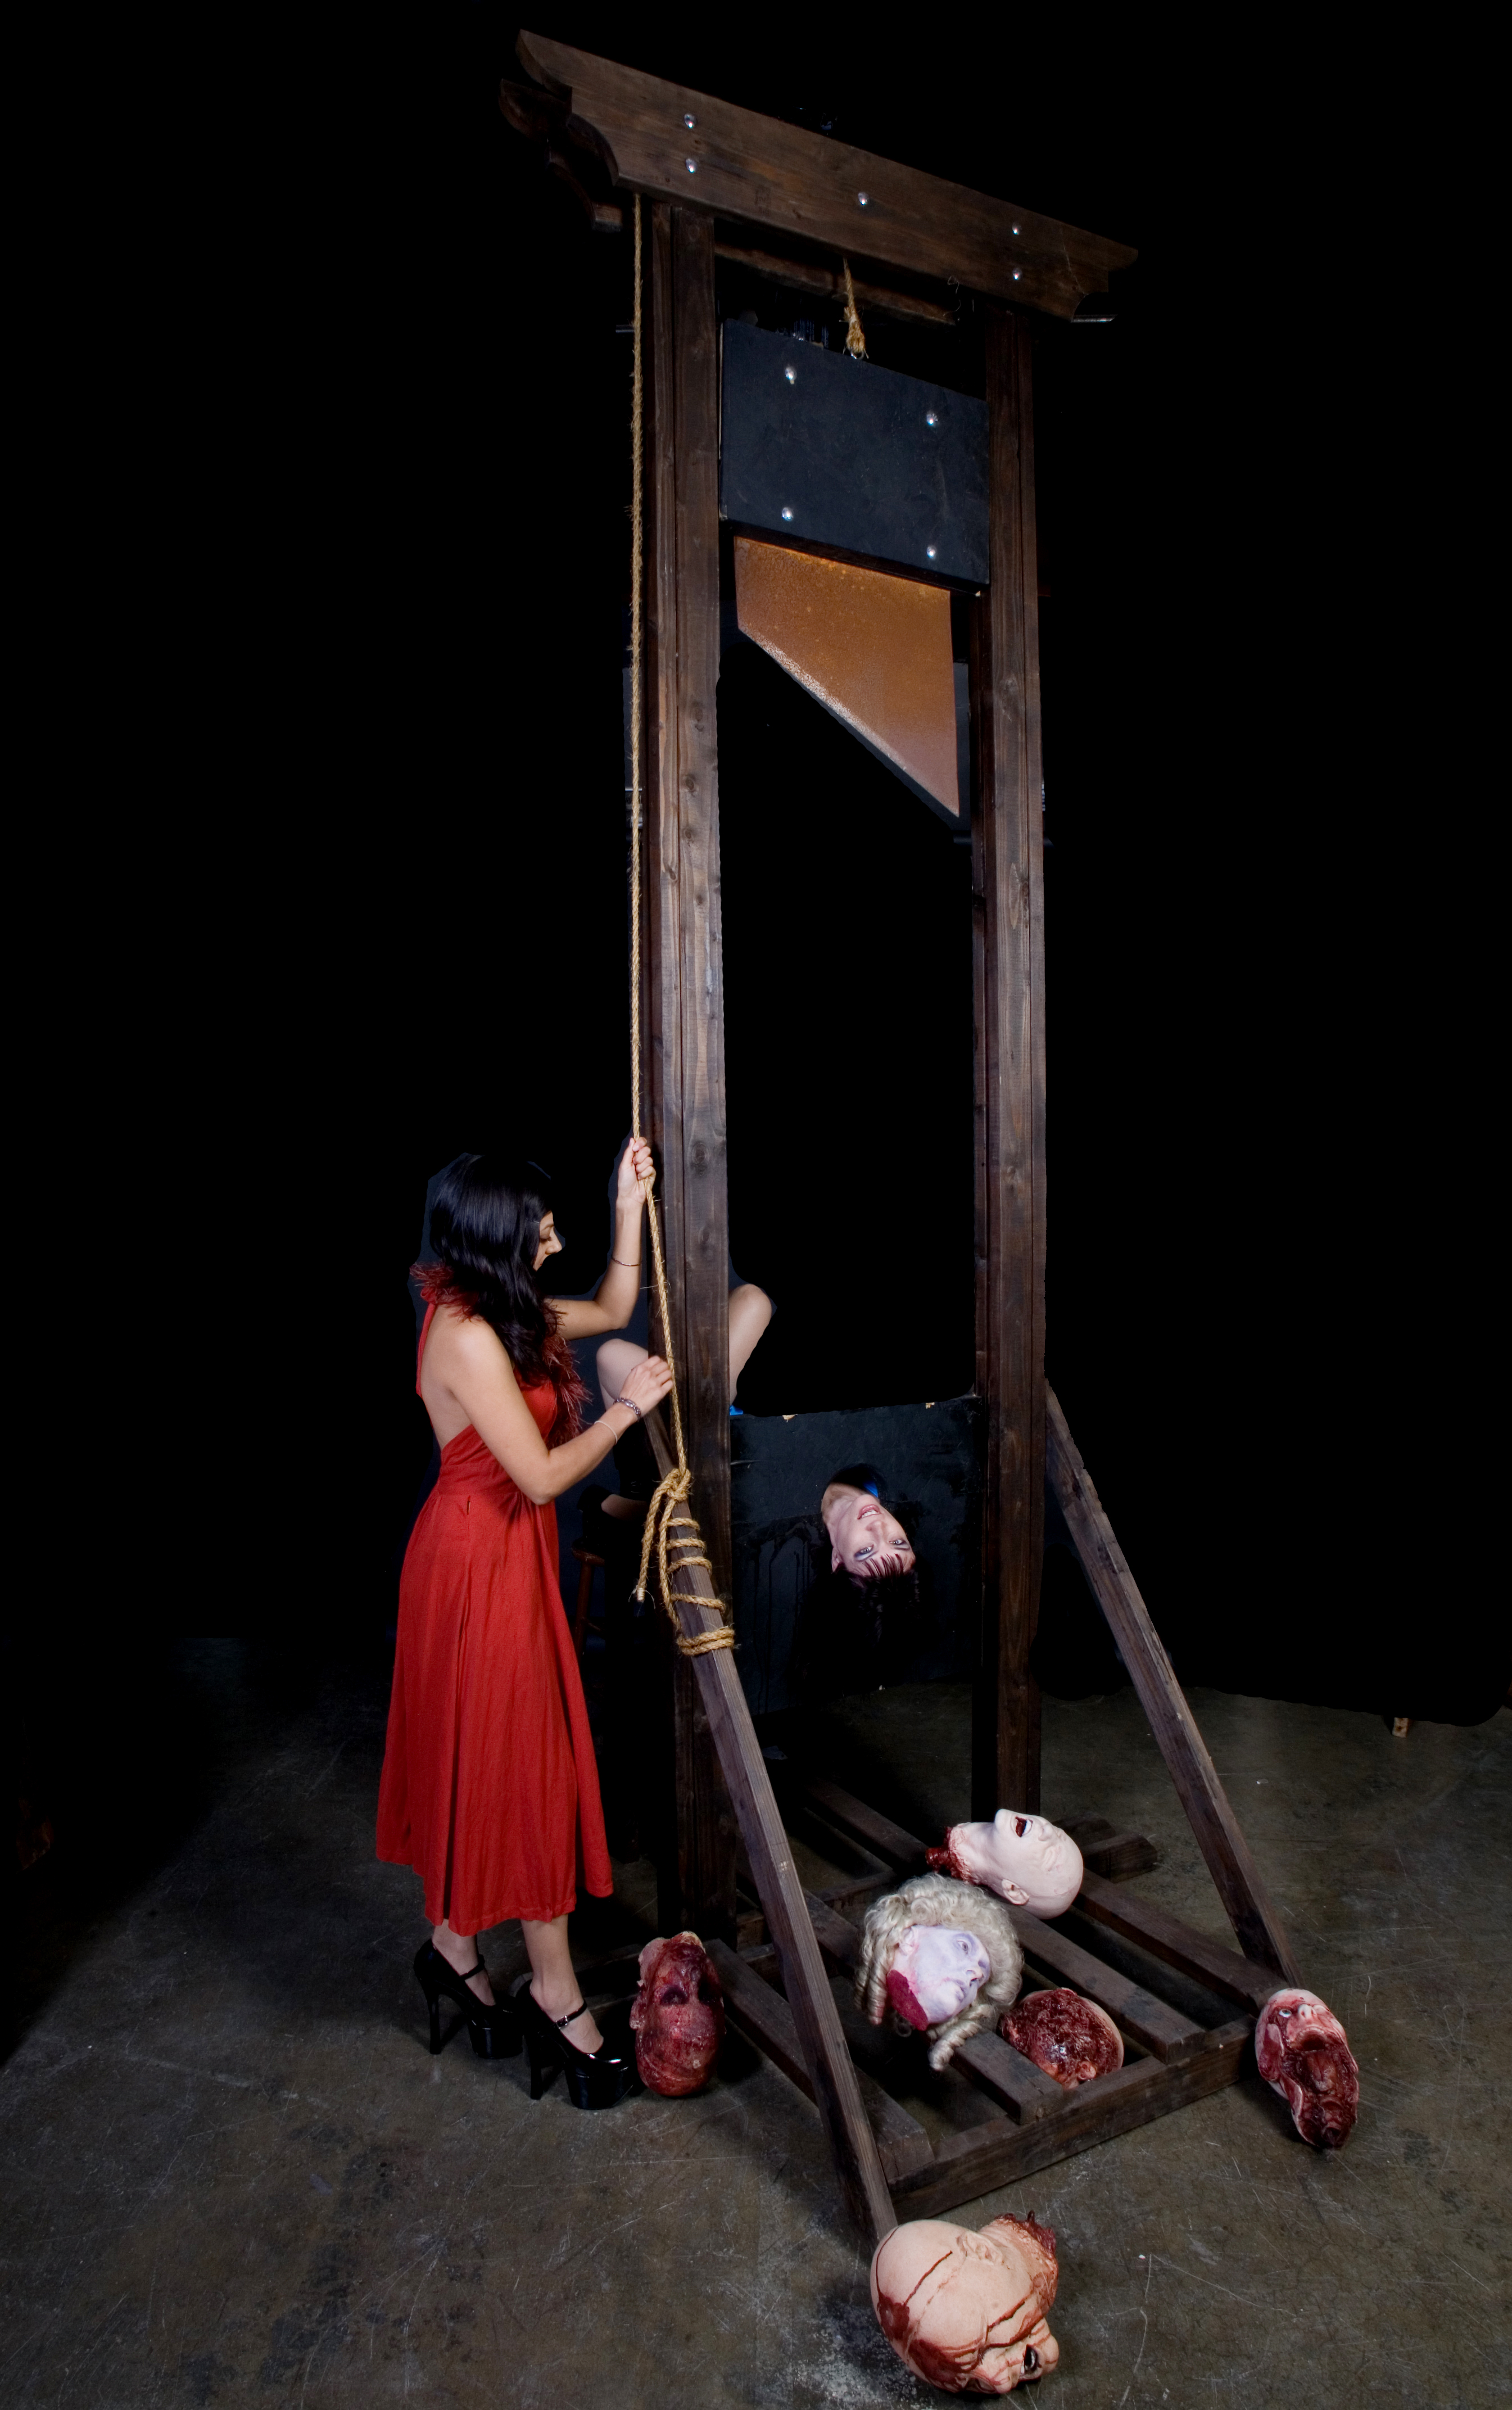 Girl On Guillotine http://www.bjwinslow.com/gallery/dapper-cadaver-girls-radhika/14_ft_guillotine_81